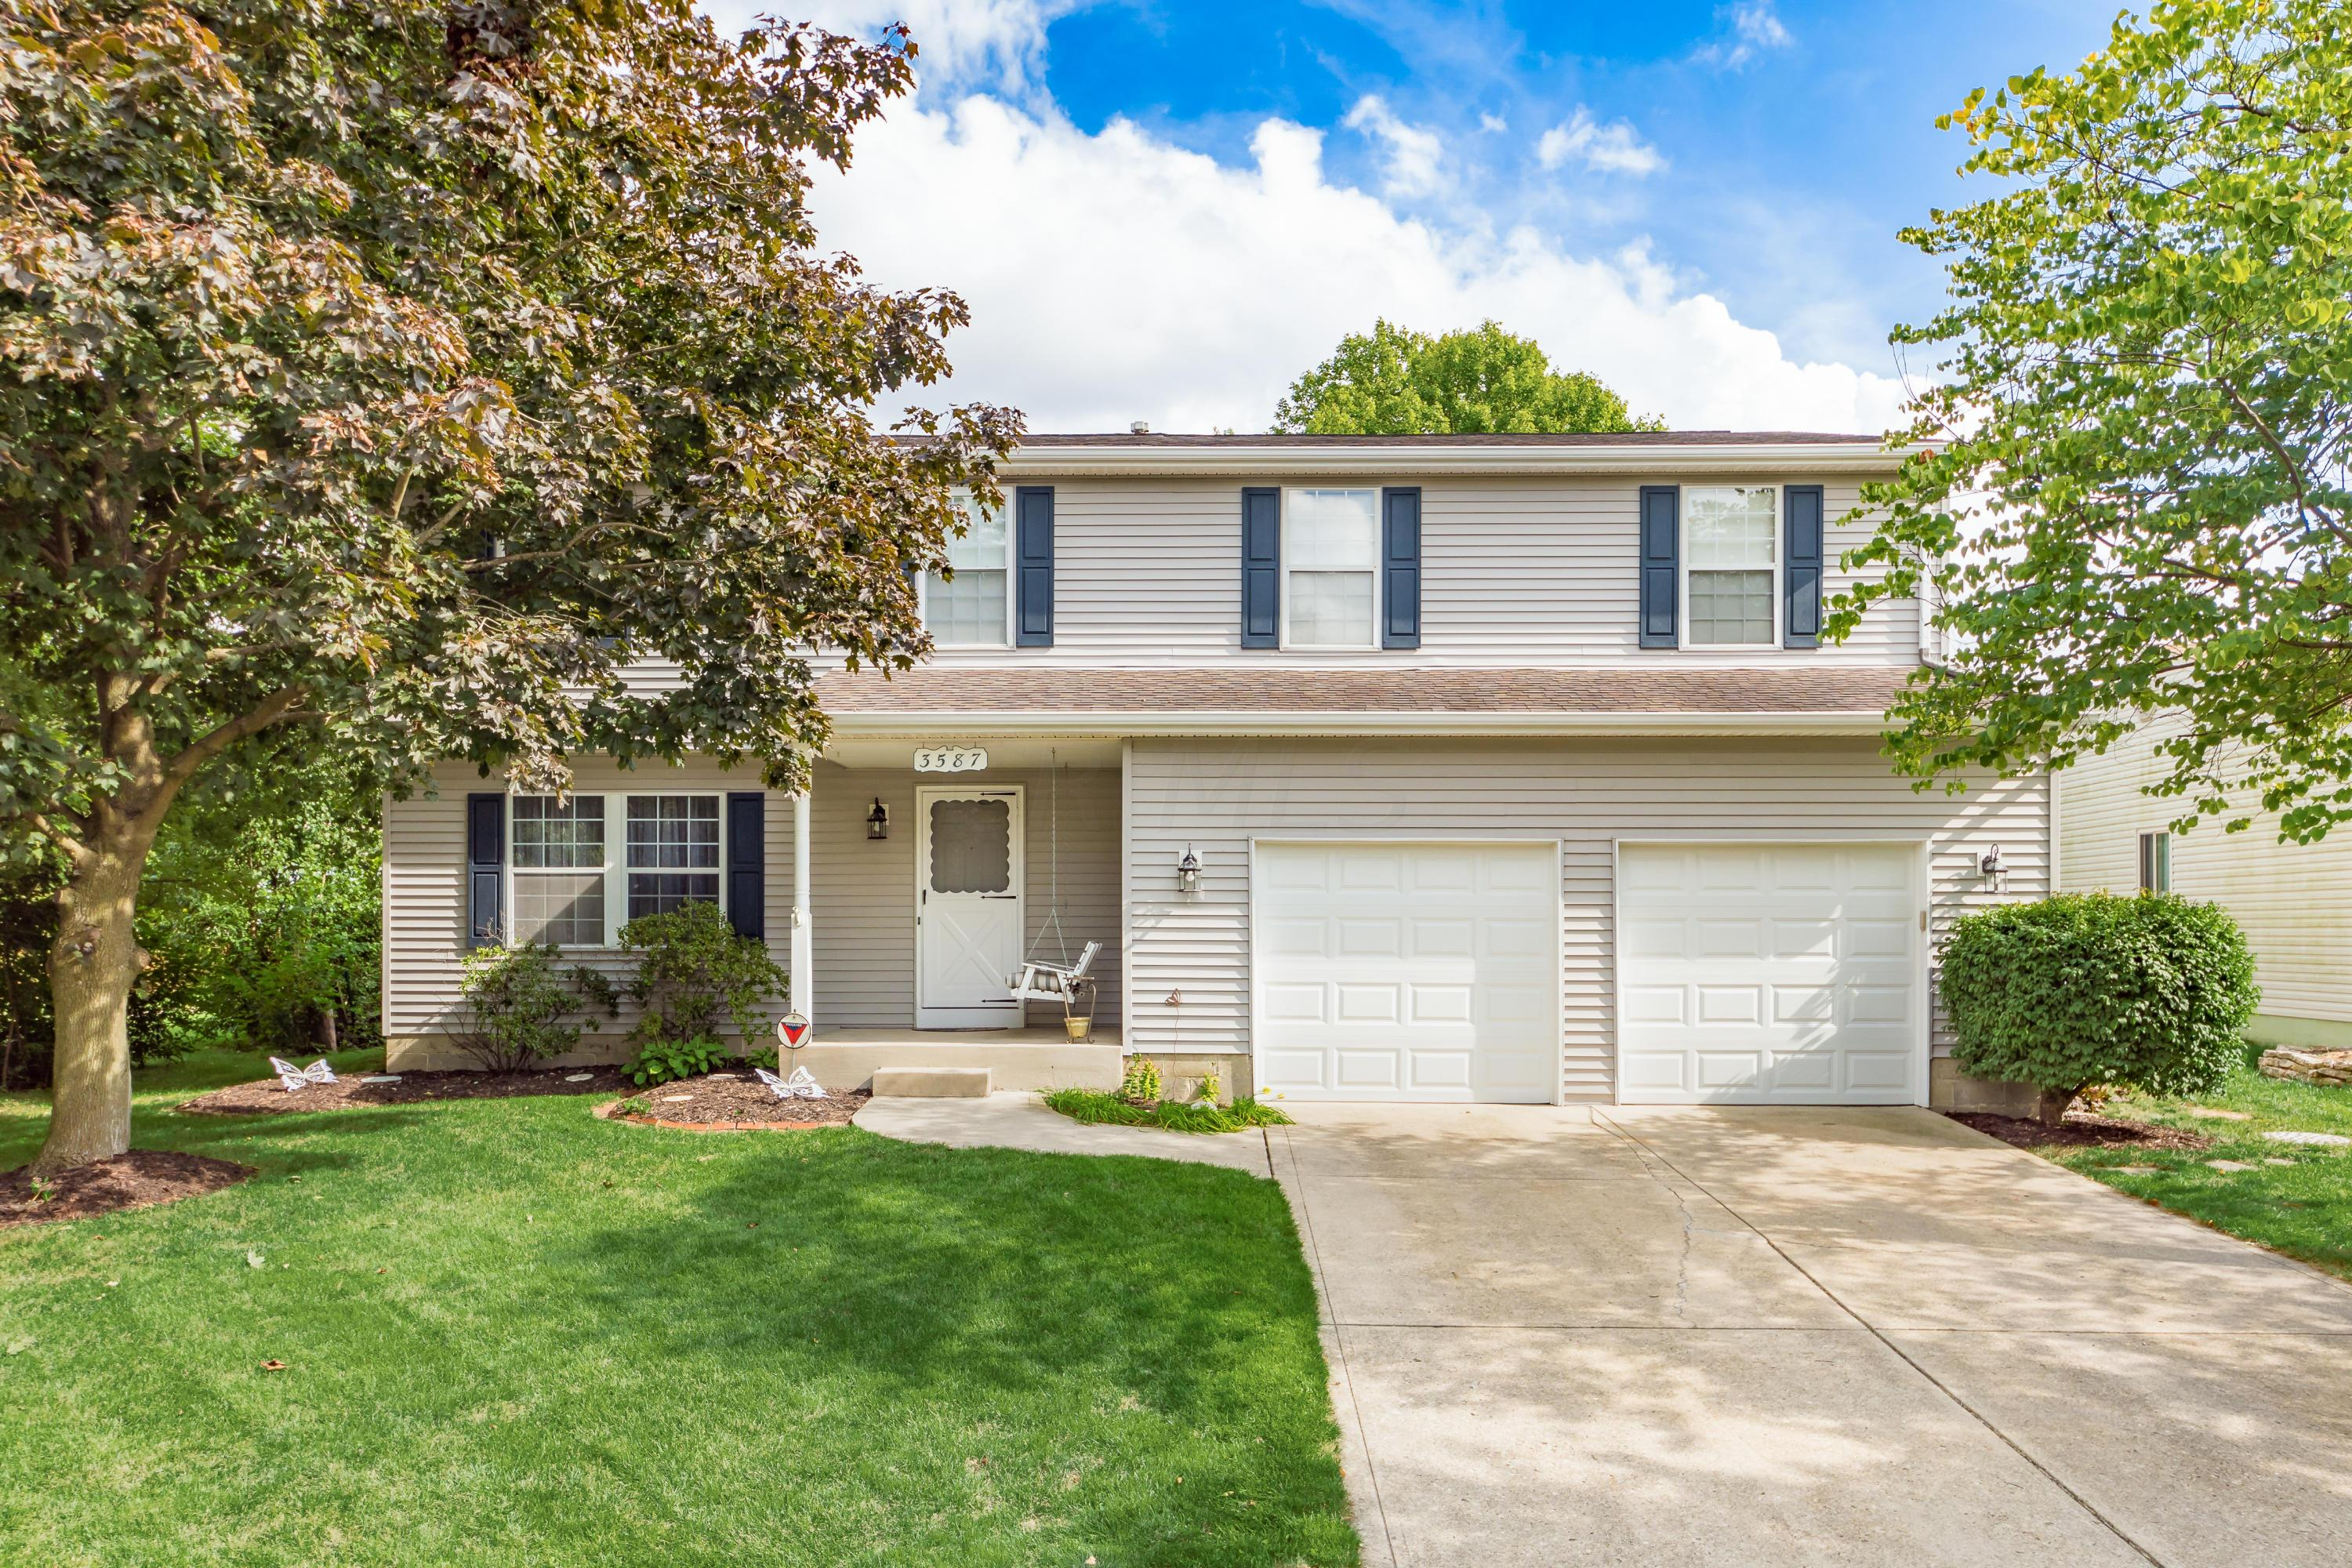 3587 Cypress Creek Drive, Columbus, Ohio 43228, 4 Bedrooms Bedrooms, ,4 BathroomsBathrooms,Residential,For Sale,Cypress Creek,220032323